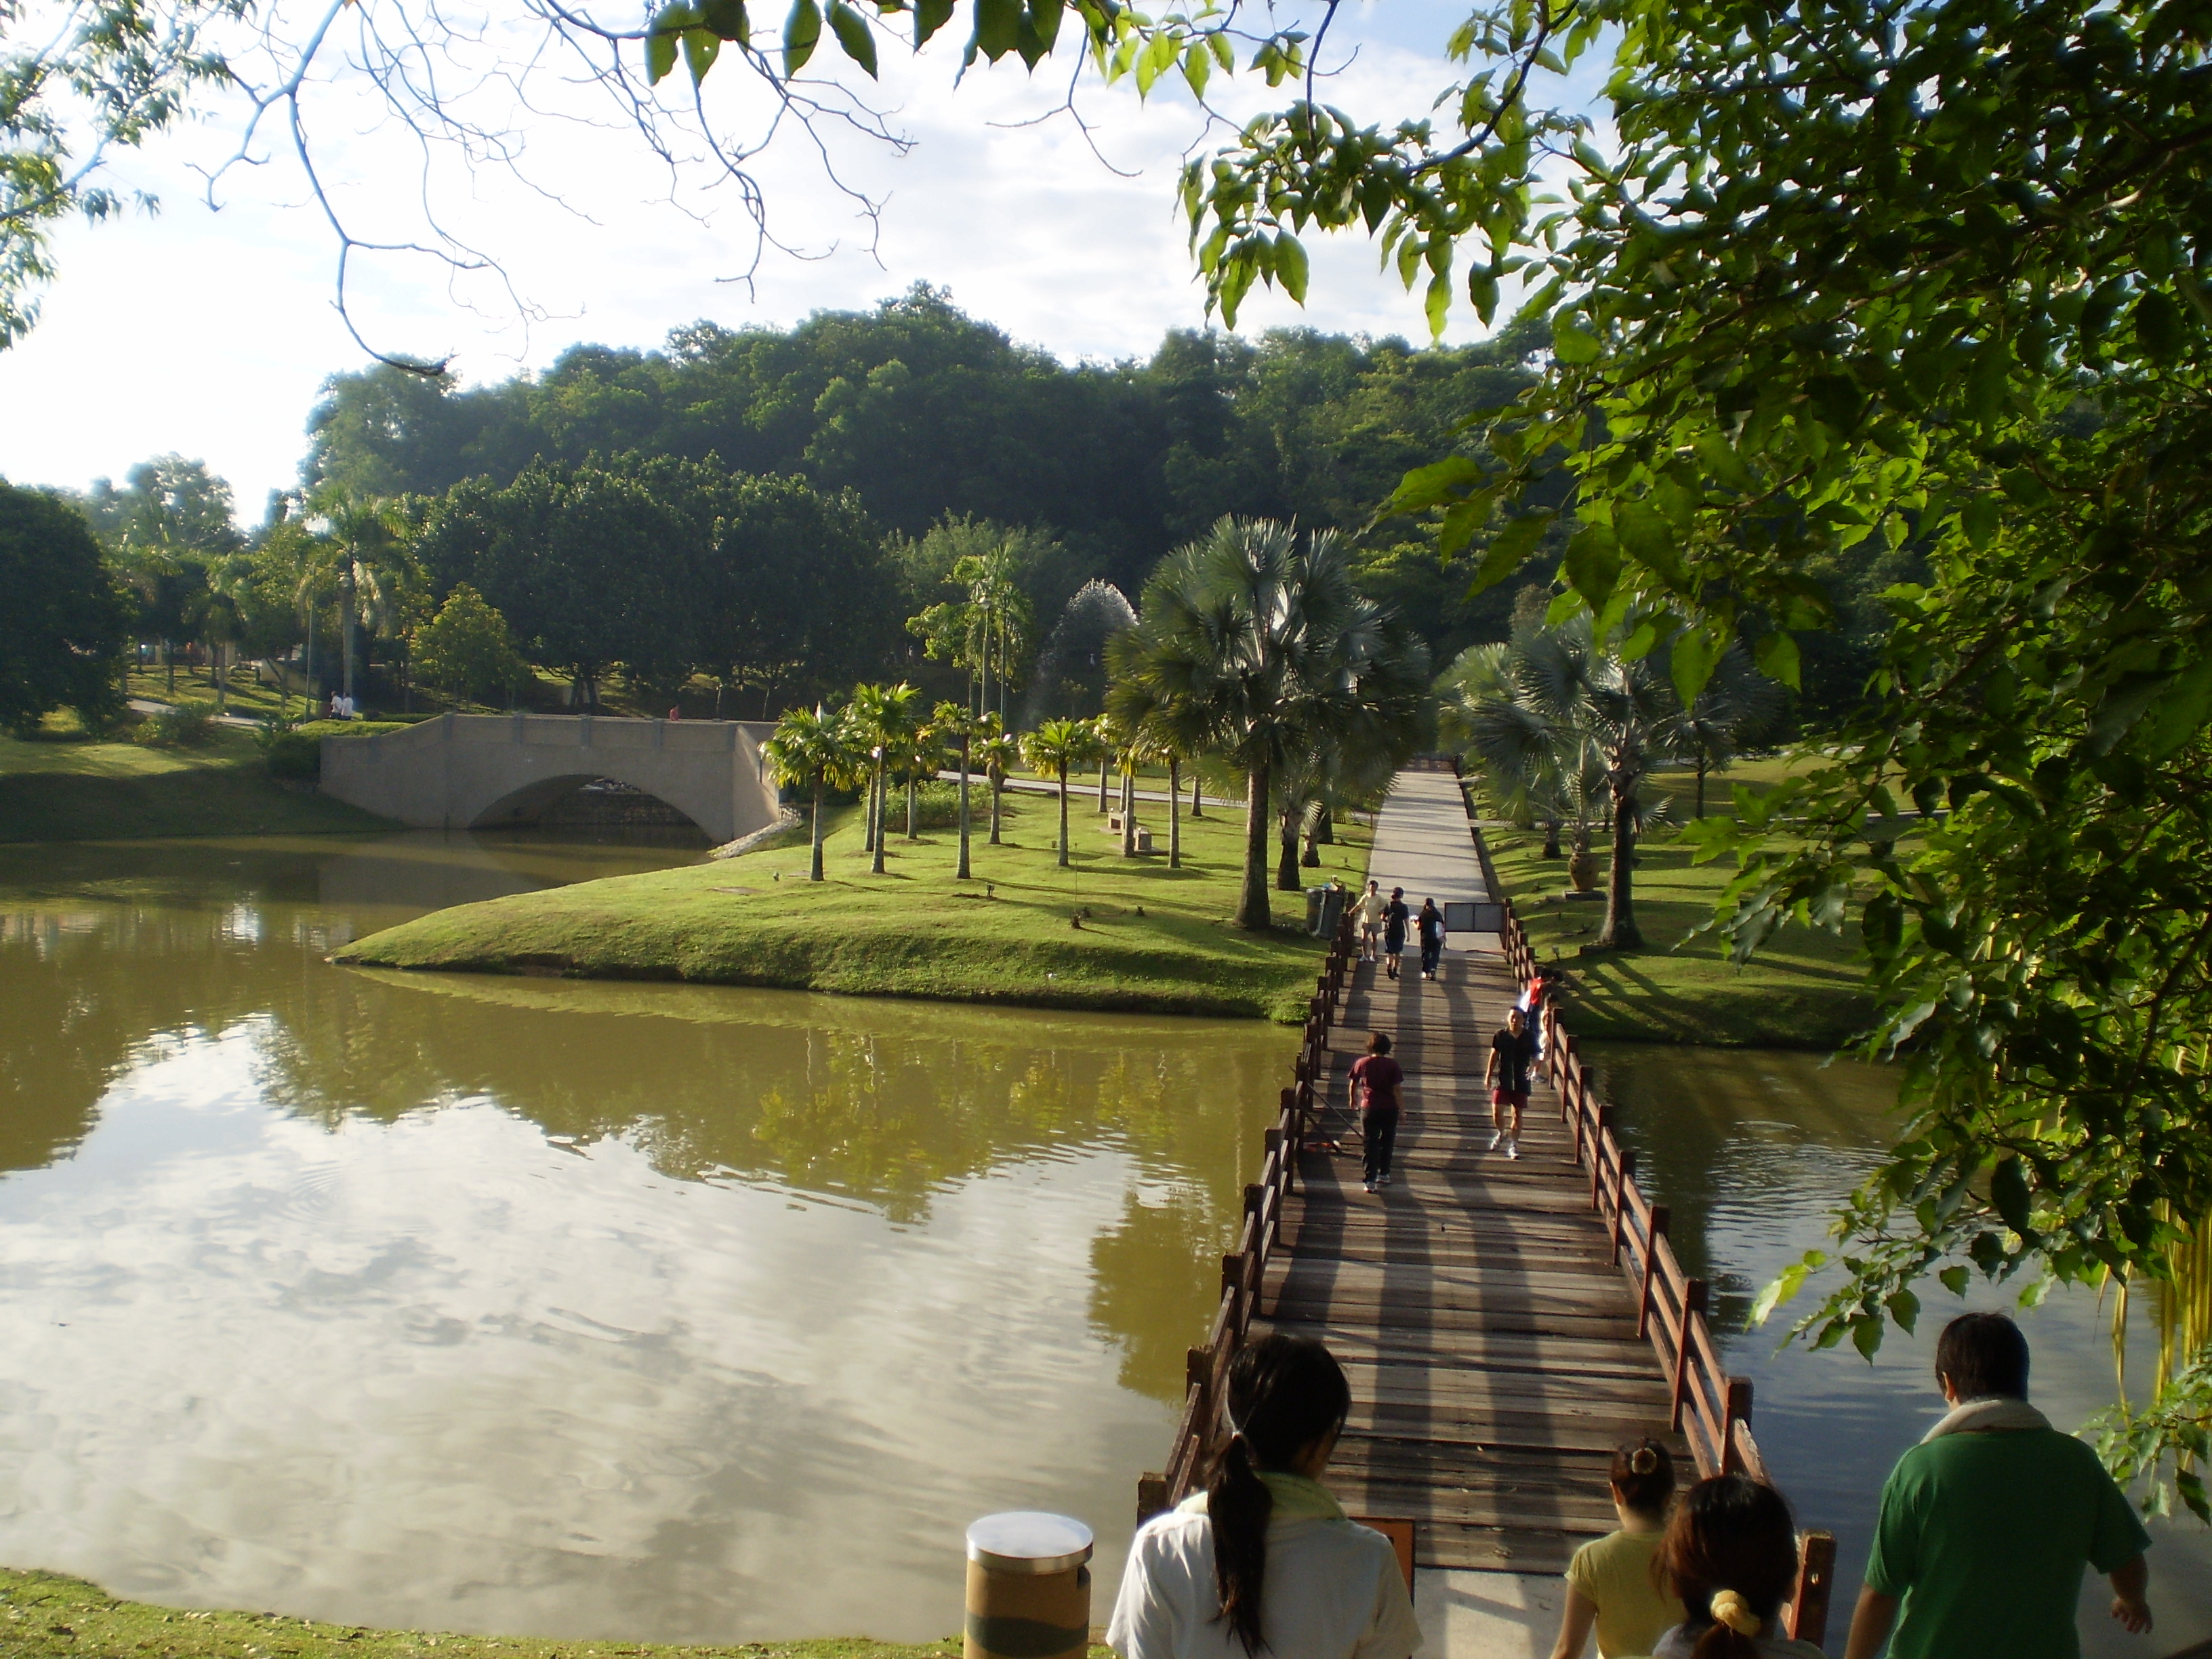 It's a great place to bring your family for a nice morning jogging session.